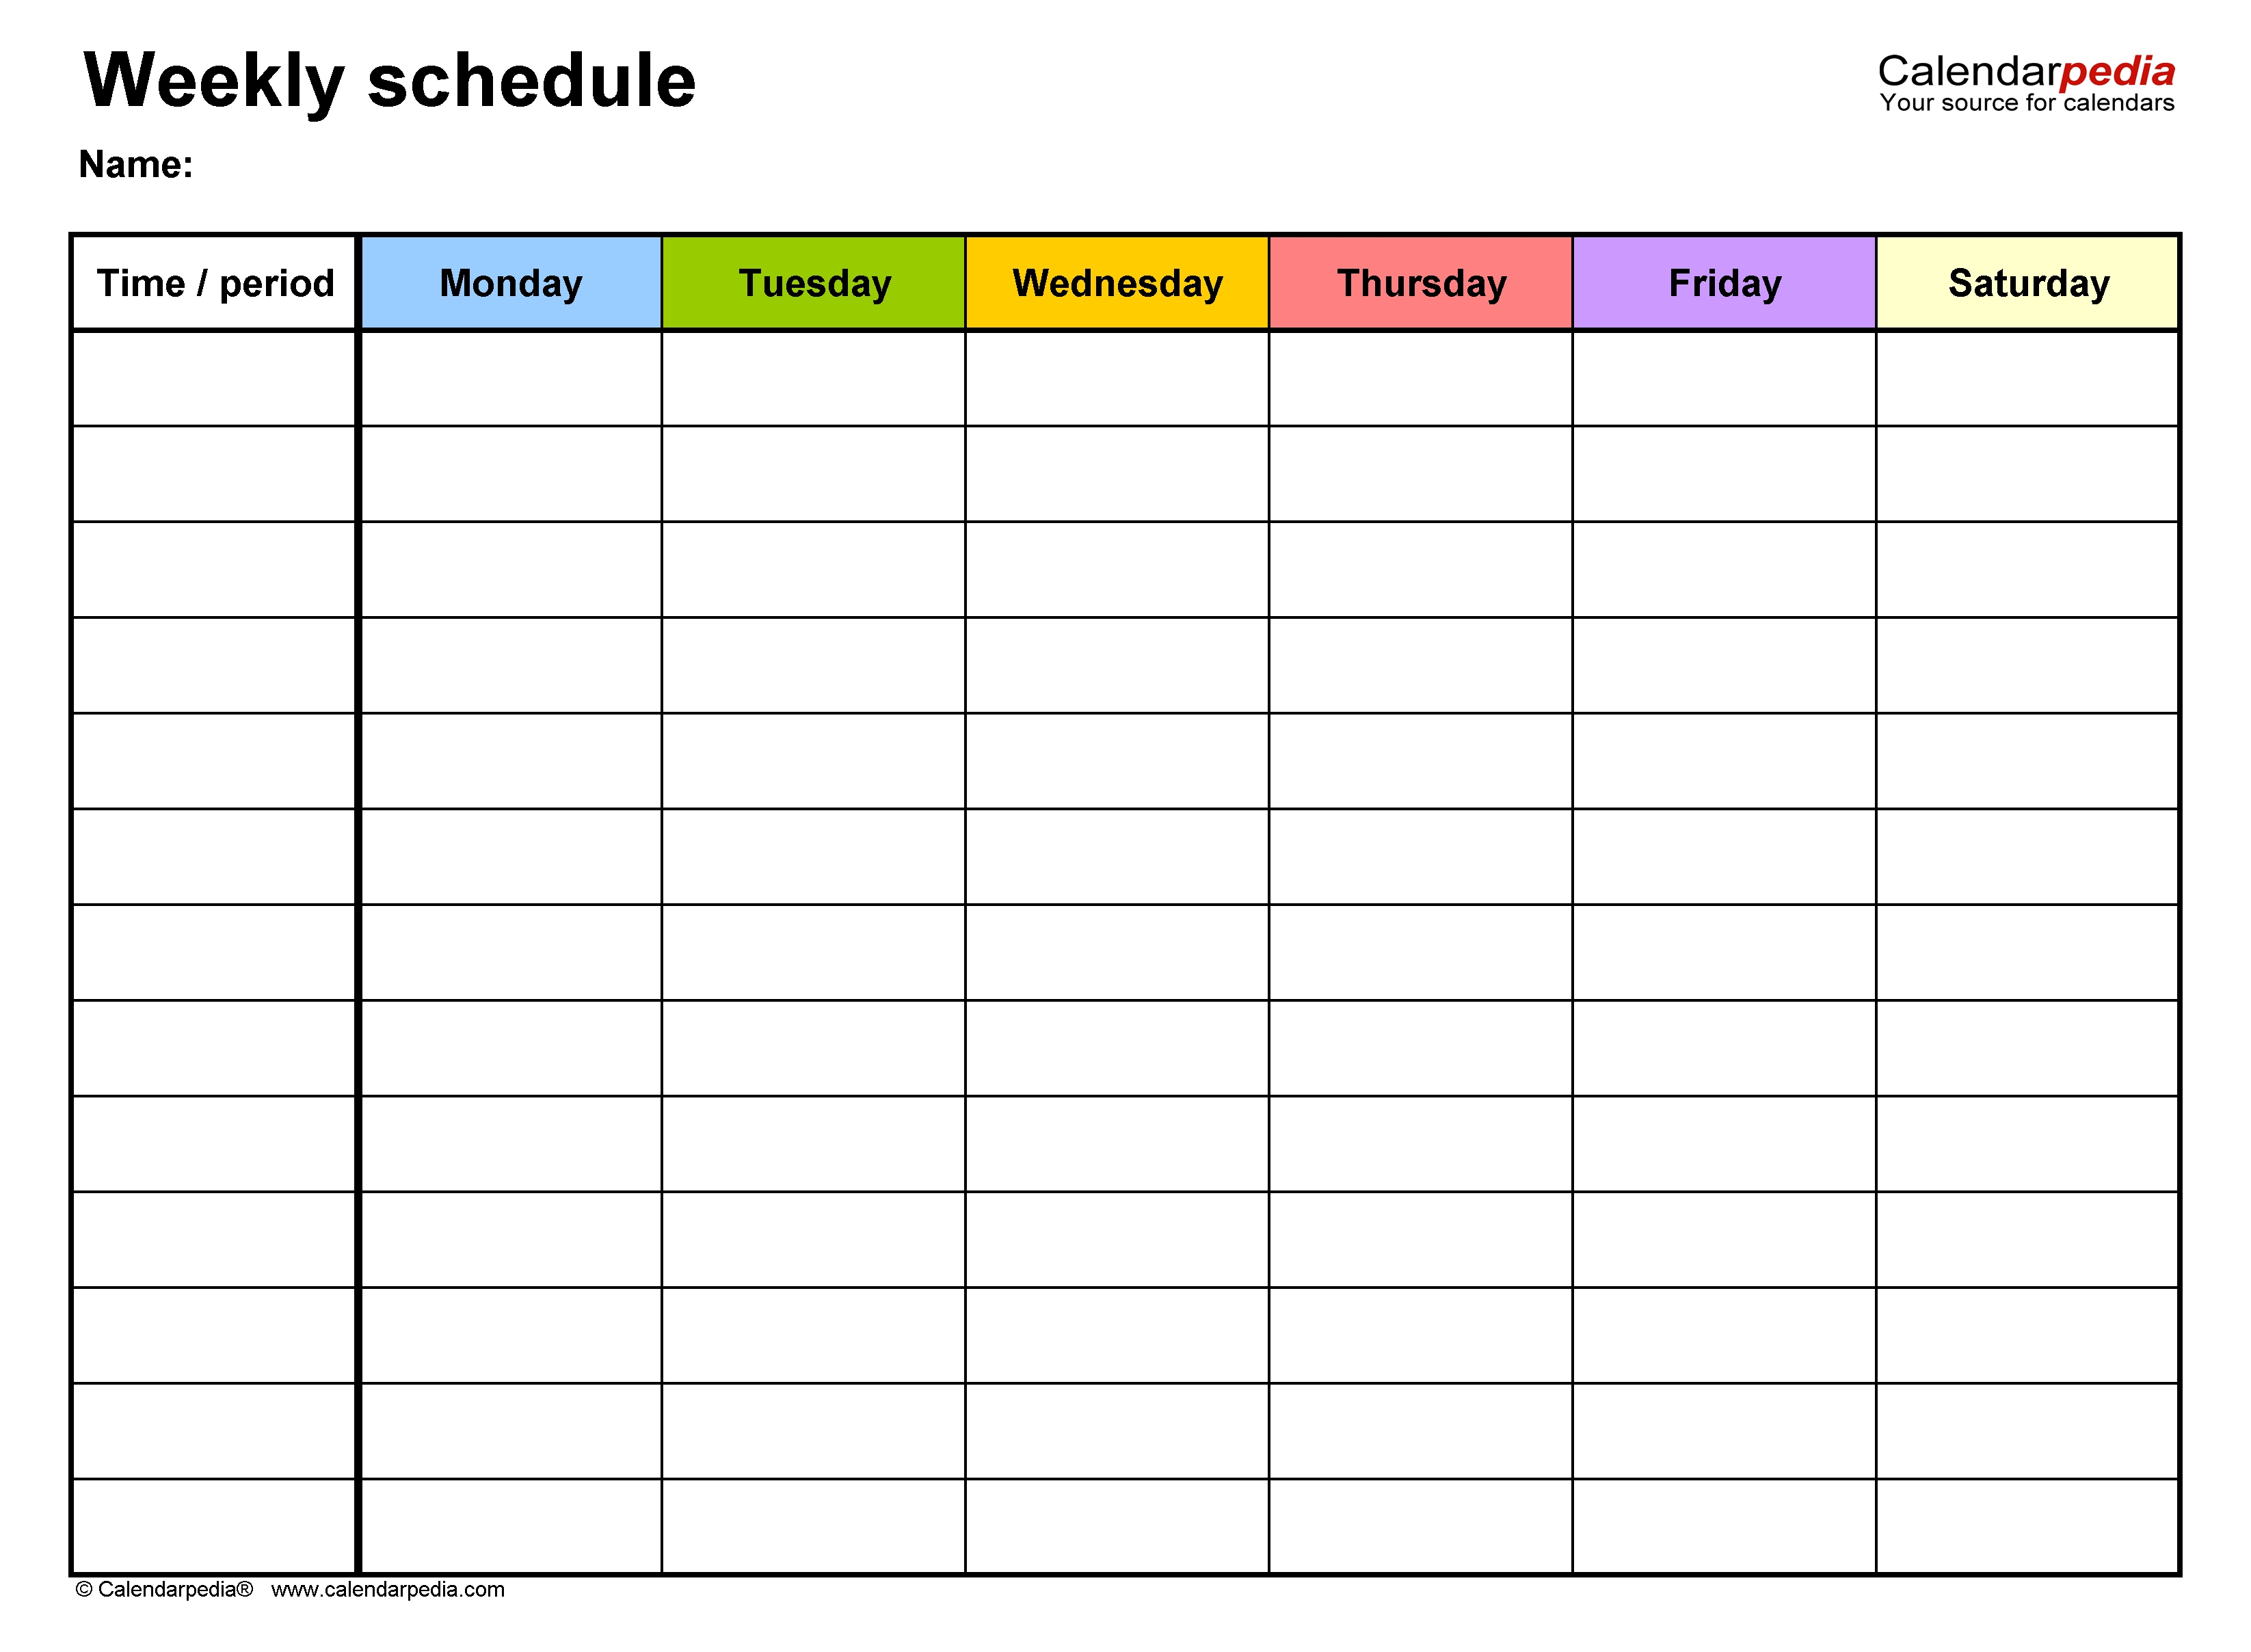 Free Weekly Schedules For Excel - 18 Templates Calendar Template On Excel